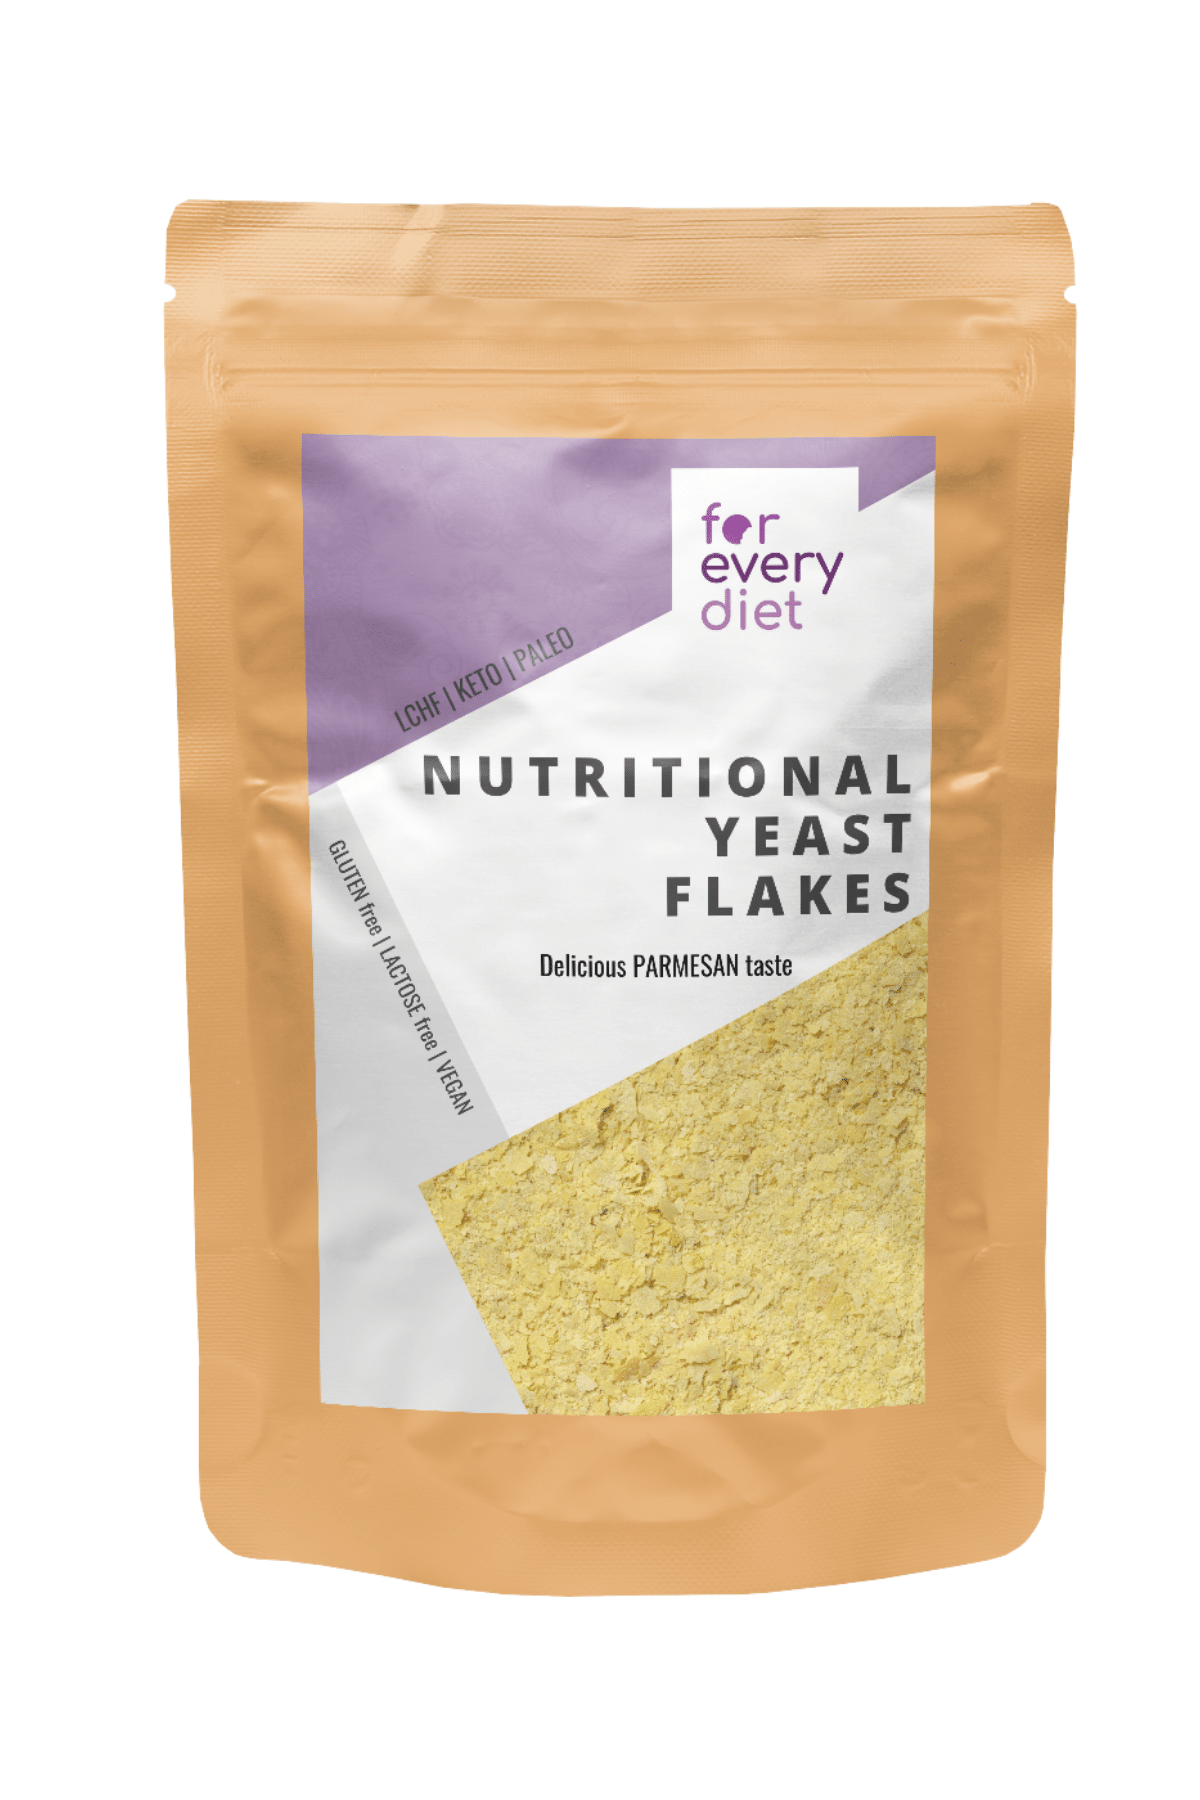 NUTRITIONAL YEAST FLAKES 100% natural